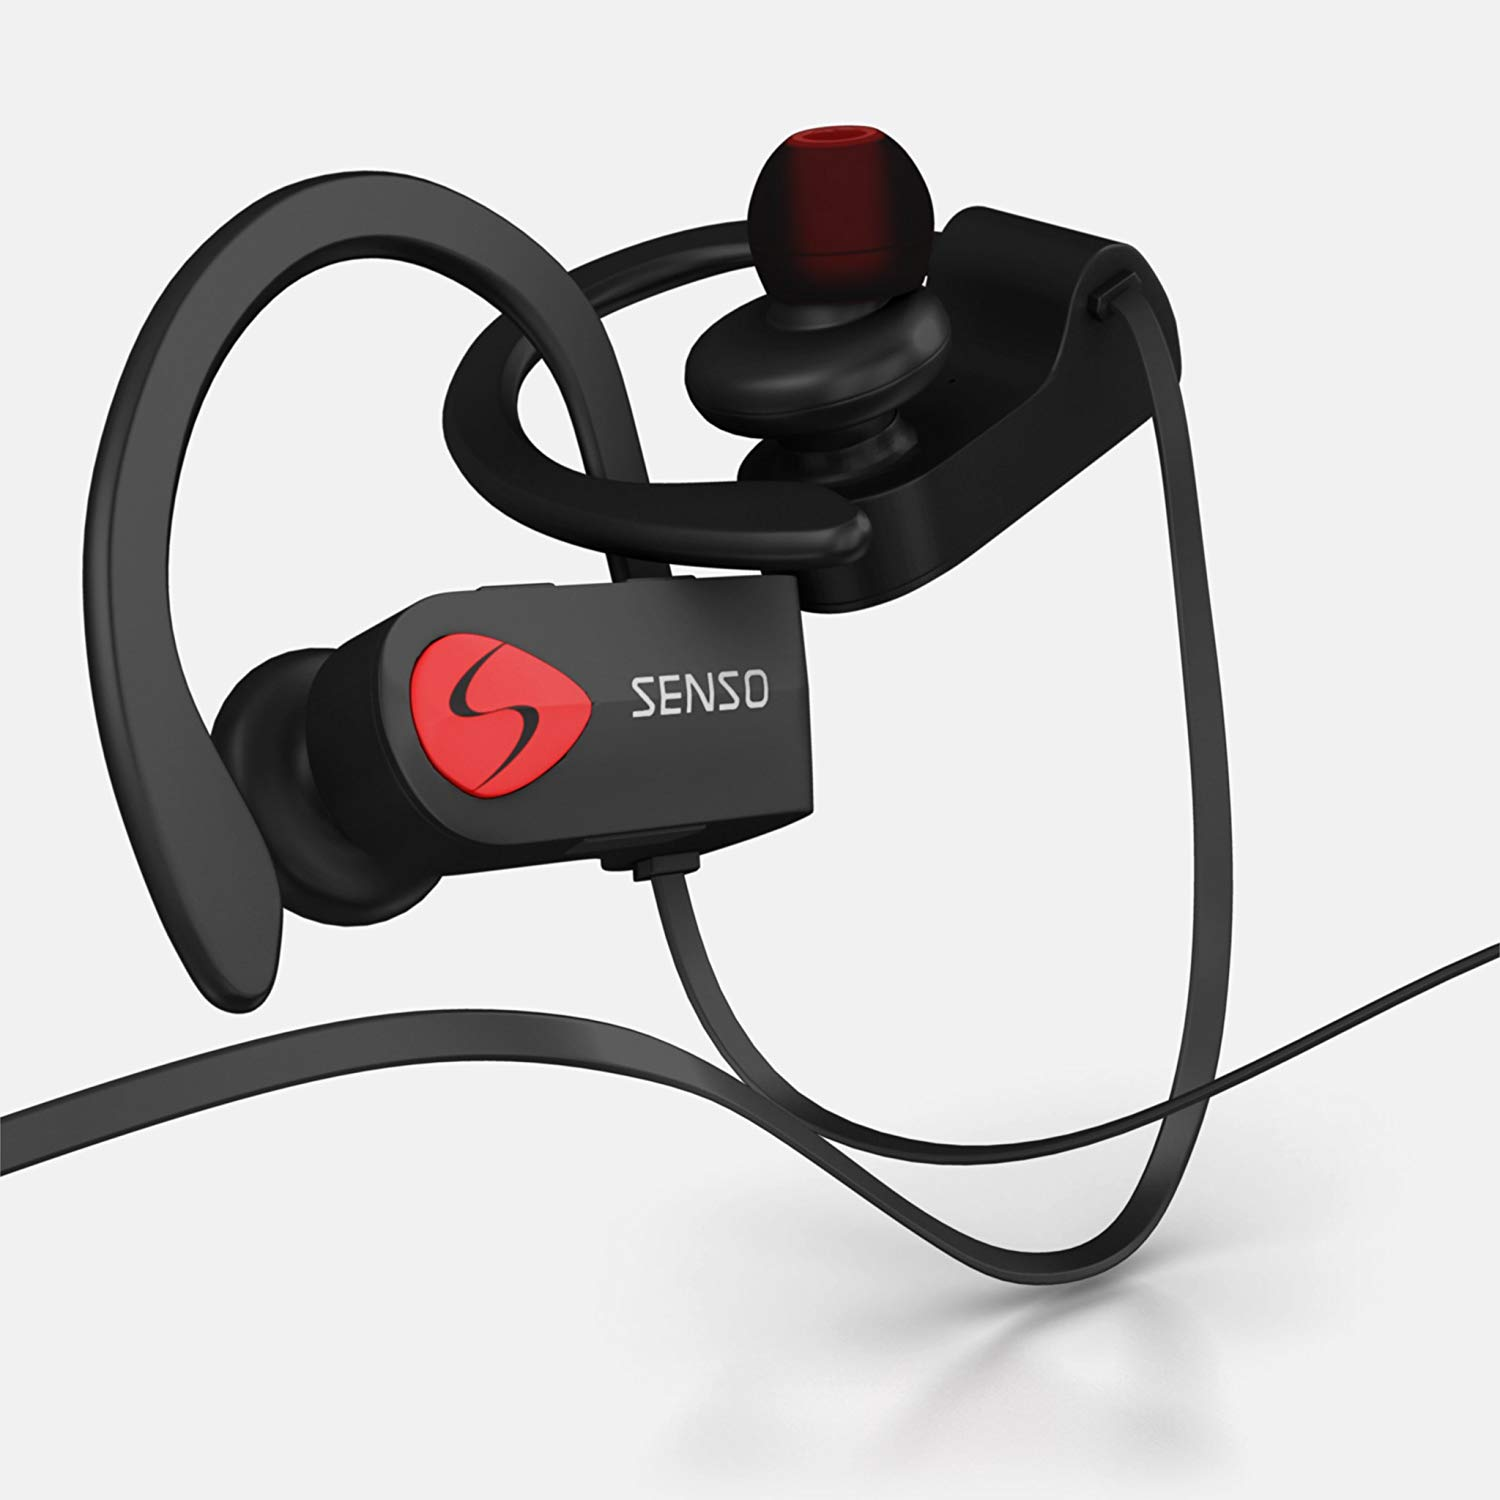 TOP 10 BEST BLUETOOTH EARBUDS IN 2020